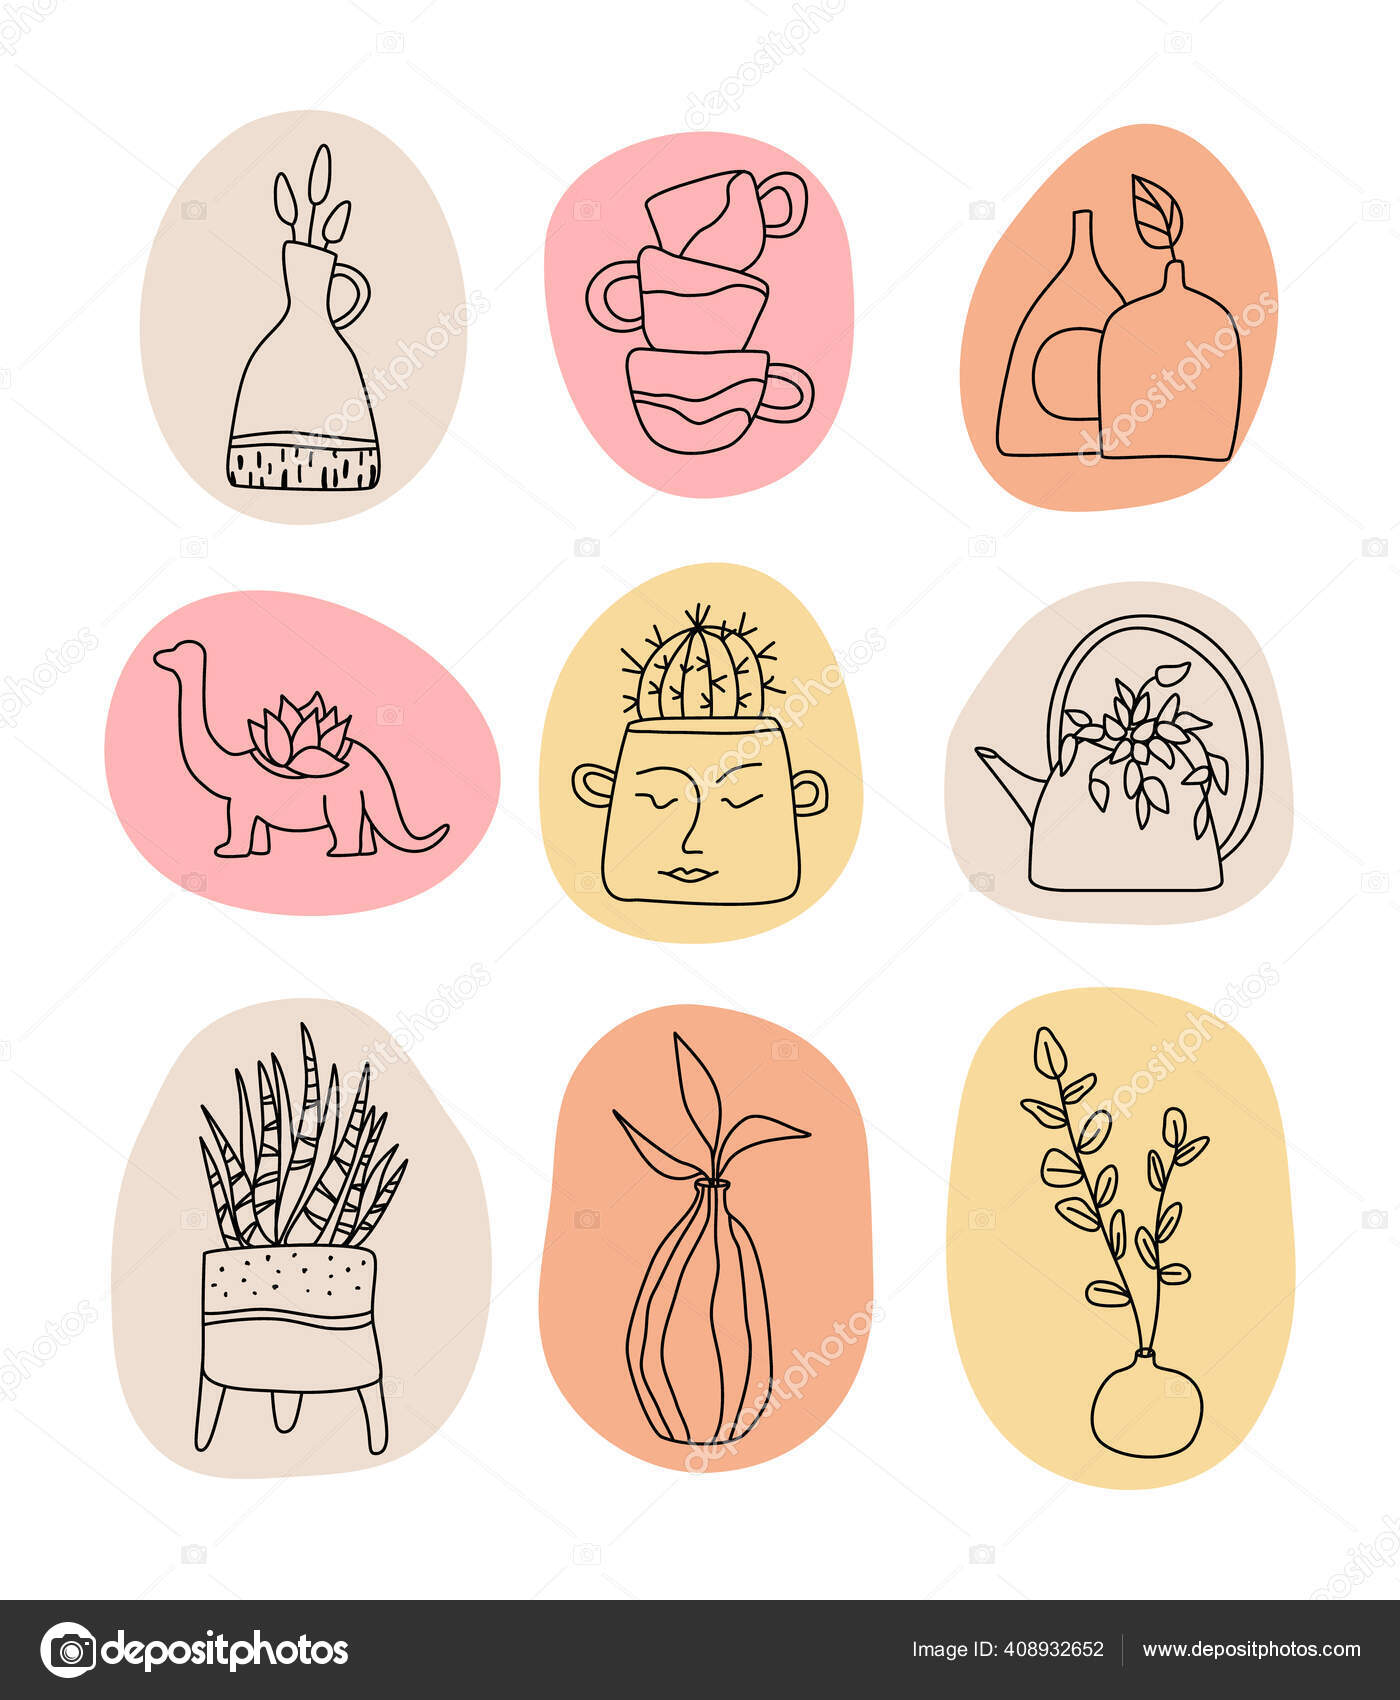 Handmade Clay Pottery Logos Collection Creative Craft Sign Concept In Line Art Style Vector Image By C Vivali Vector Stock 408932652